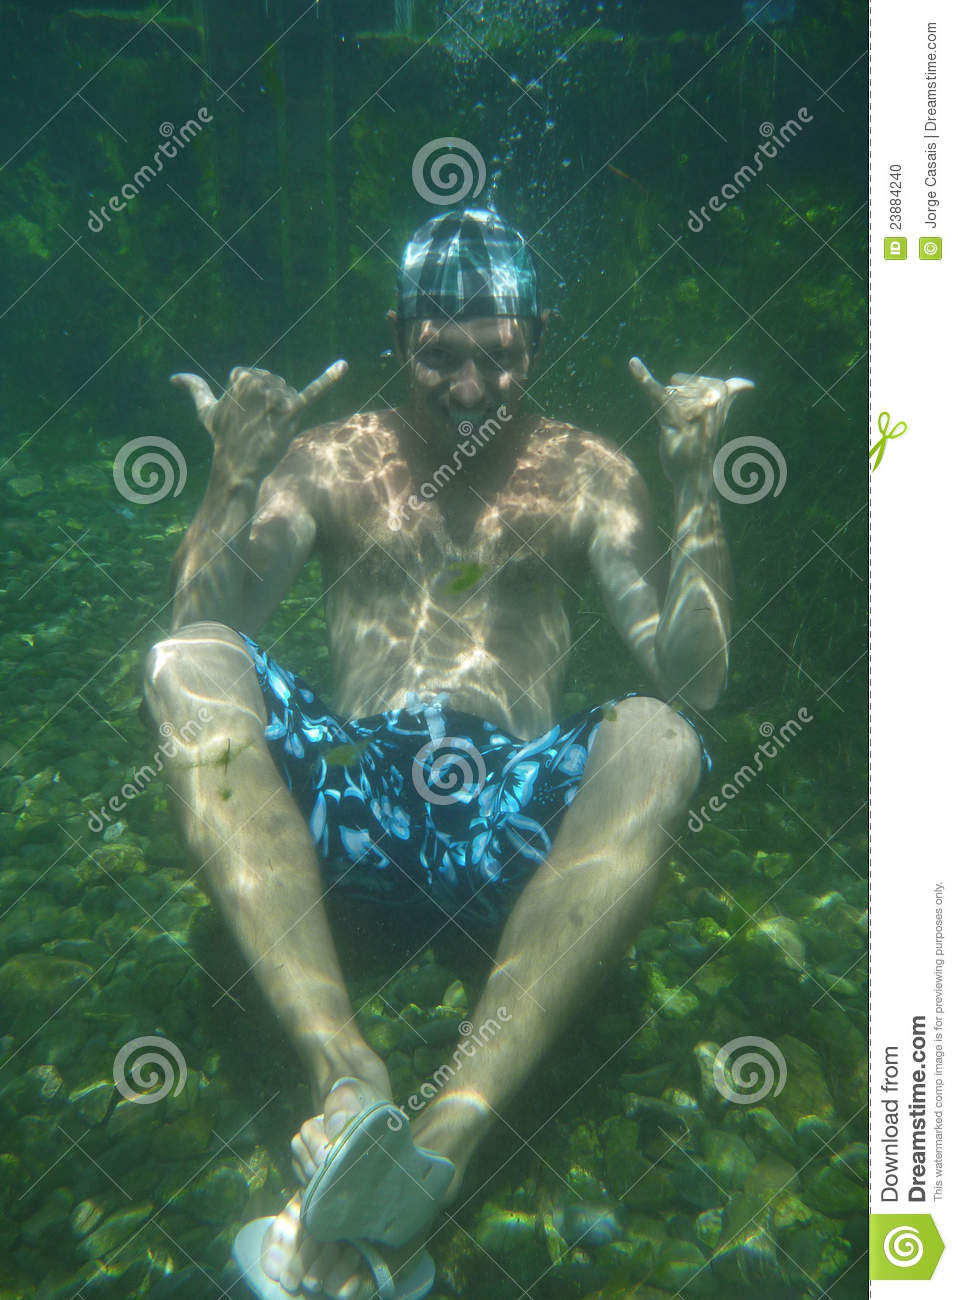 Man underwater in the pool underwater photo